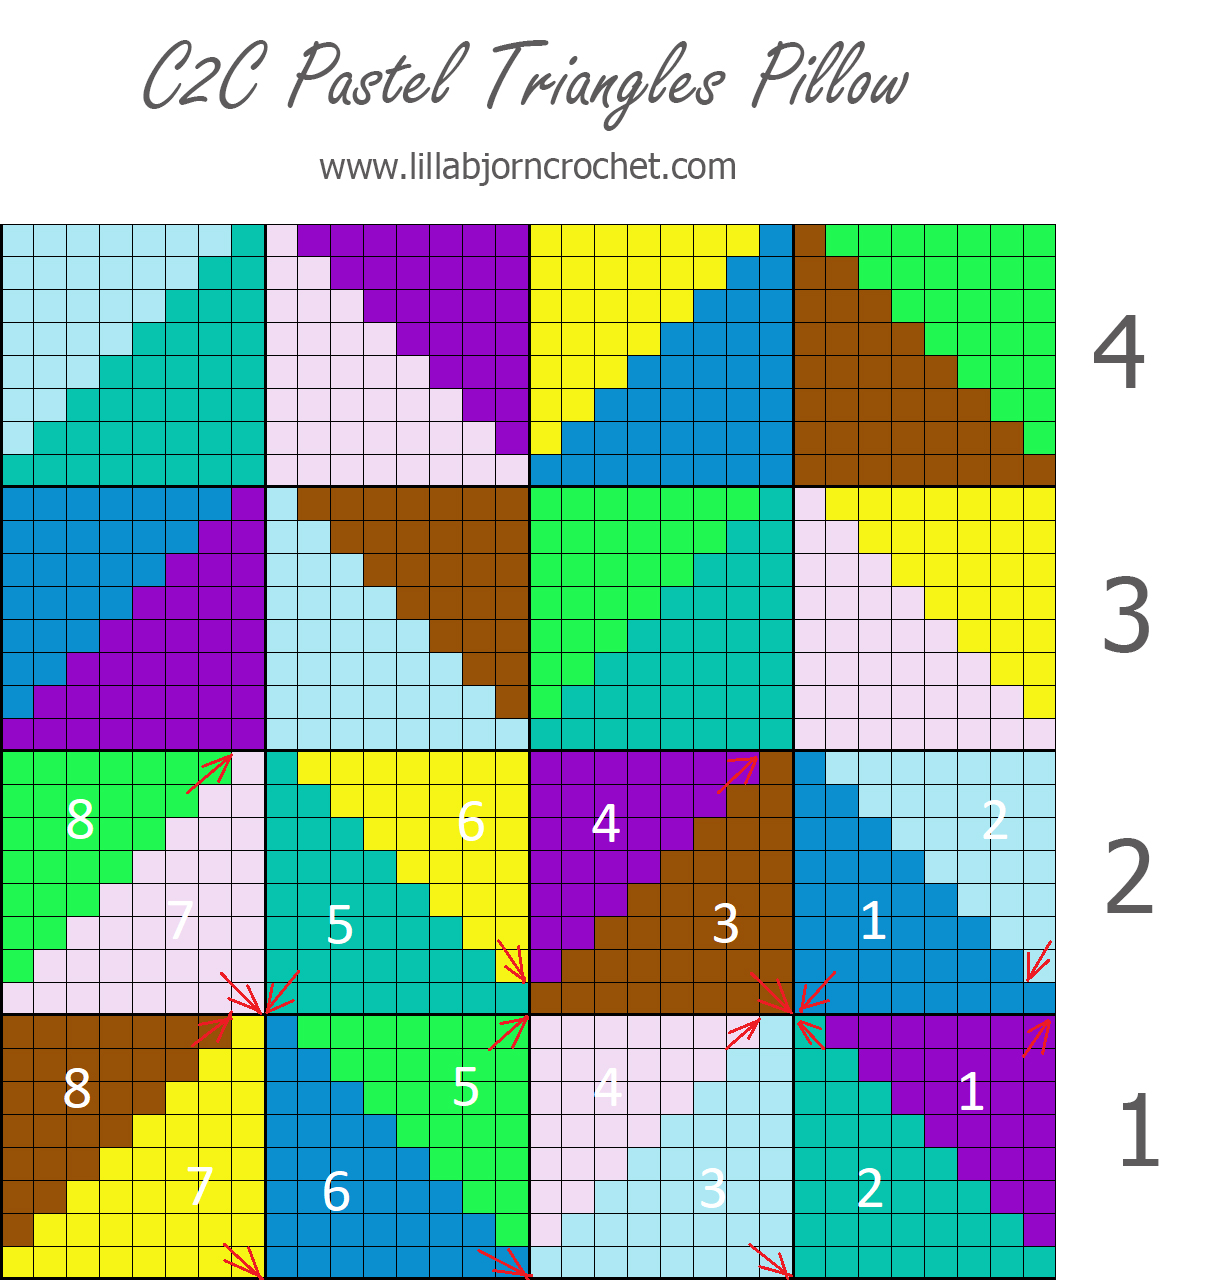 C2C Pastel Triangles pillow - join as you go - tutorial by www.lillabjorncrochet.com